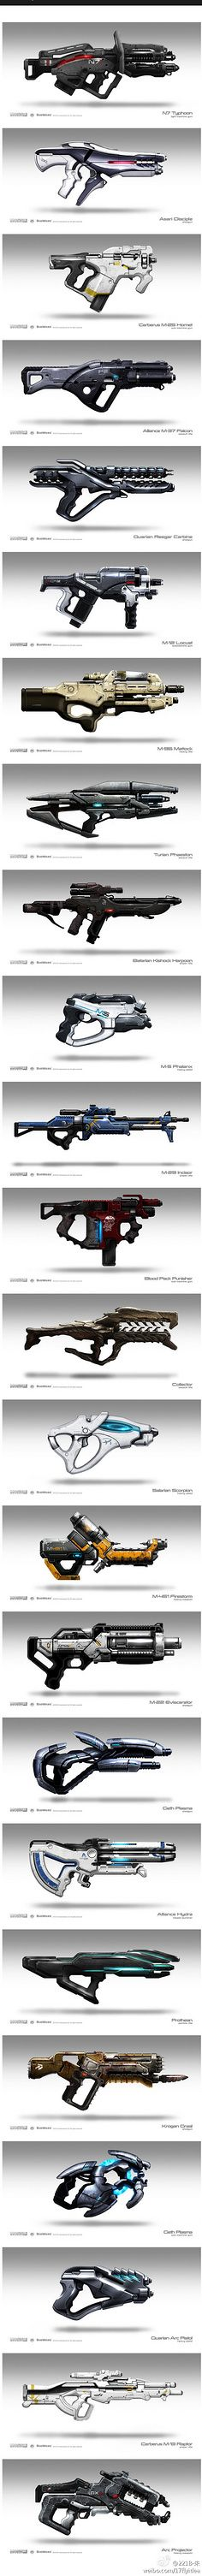 Some weapon pics from Mass Effect series.